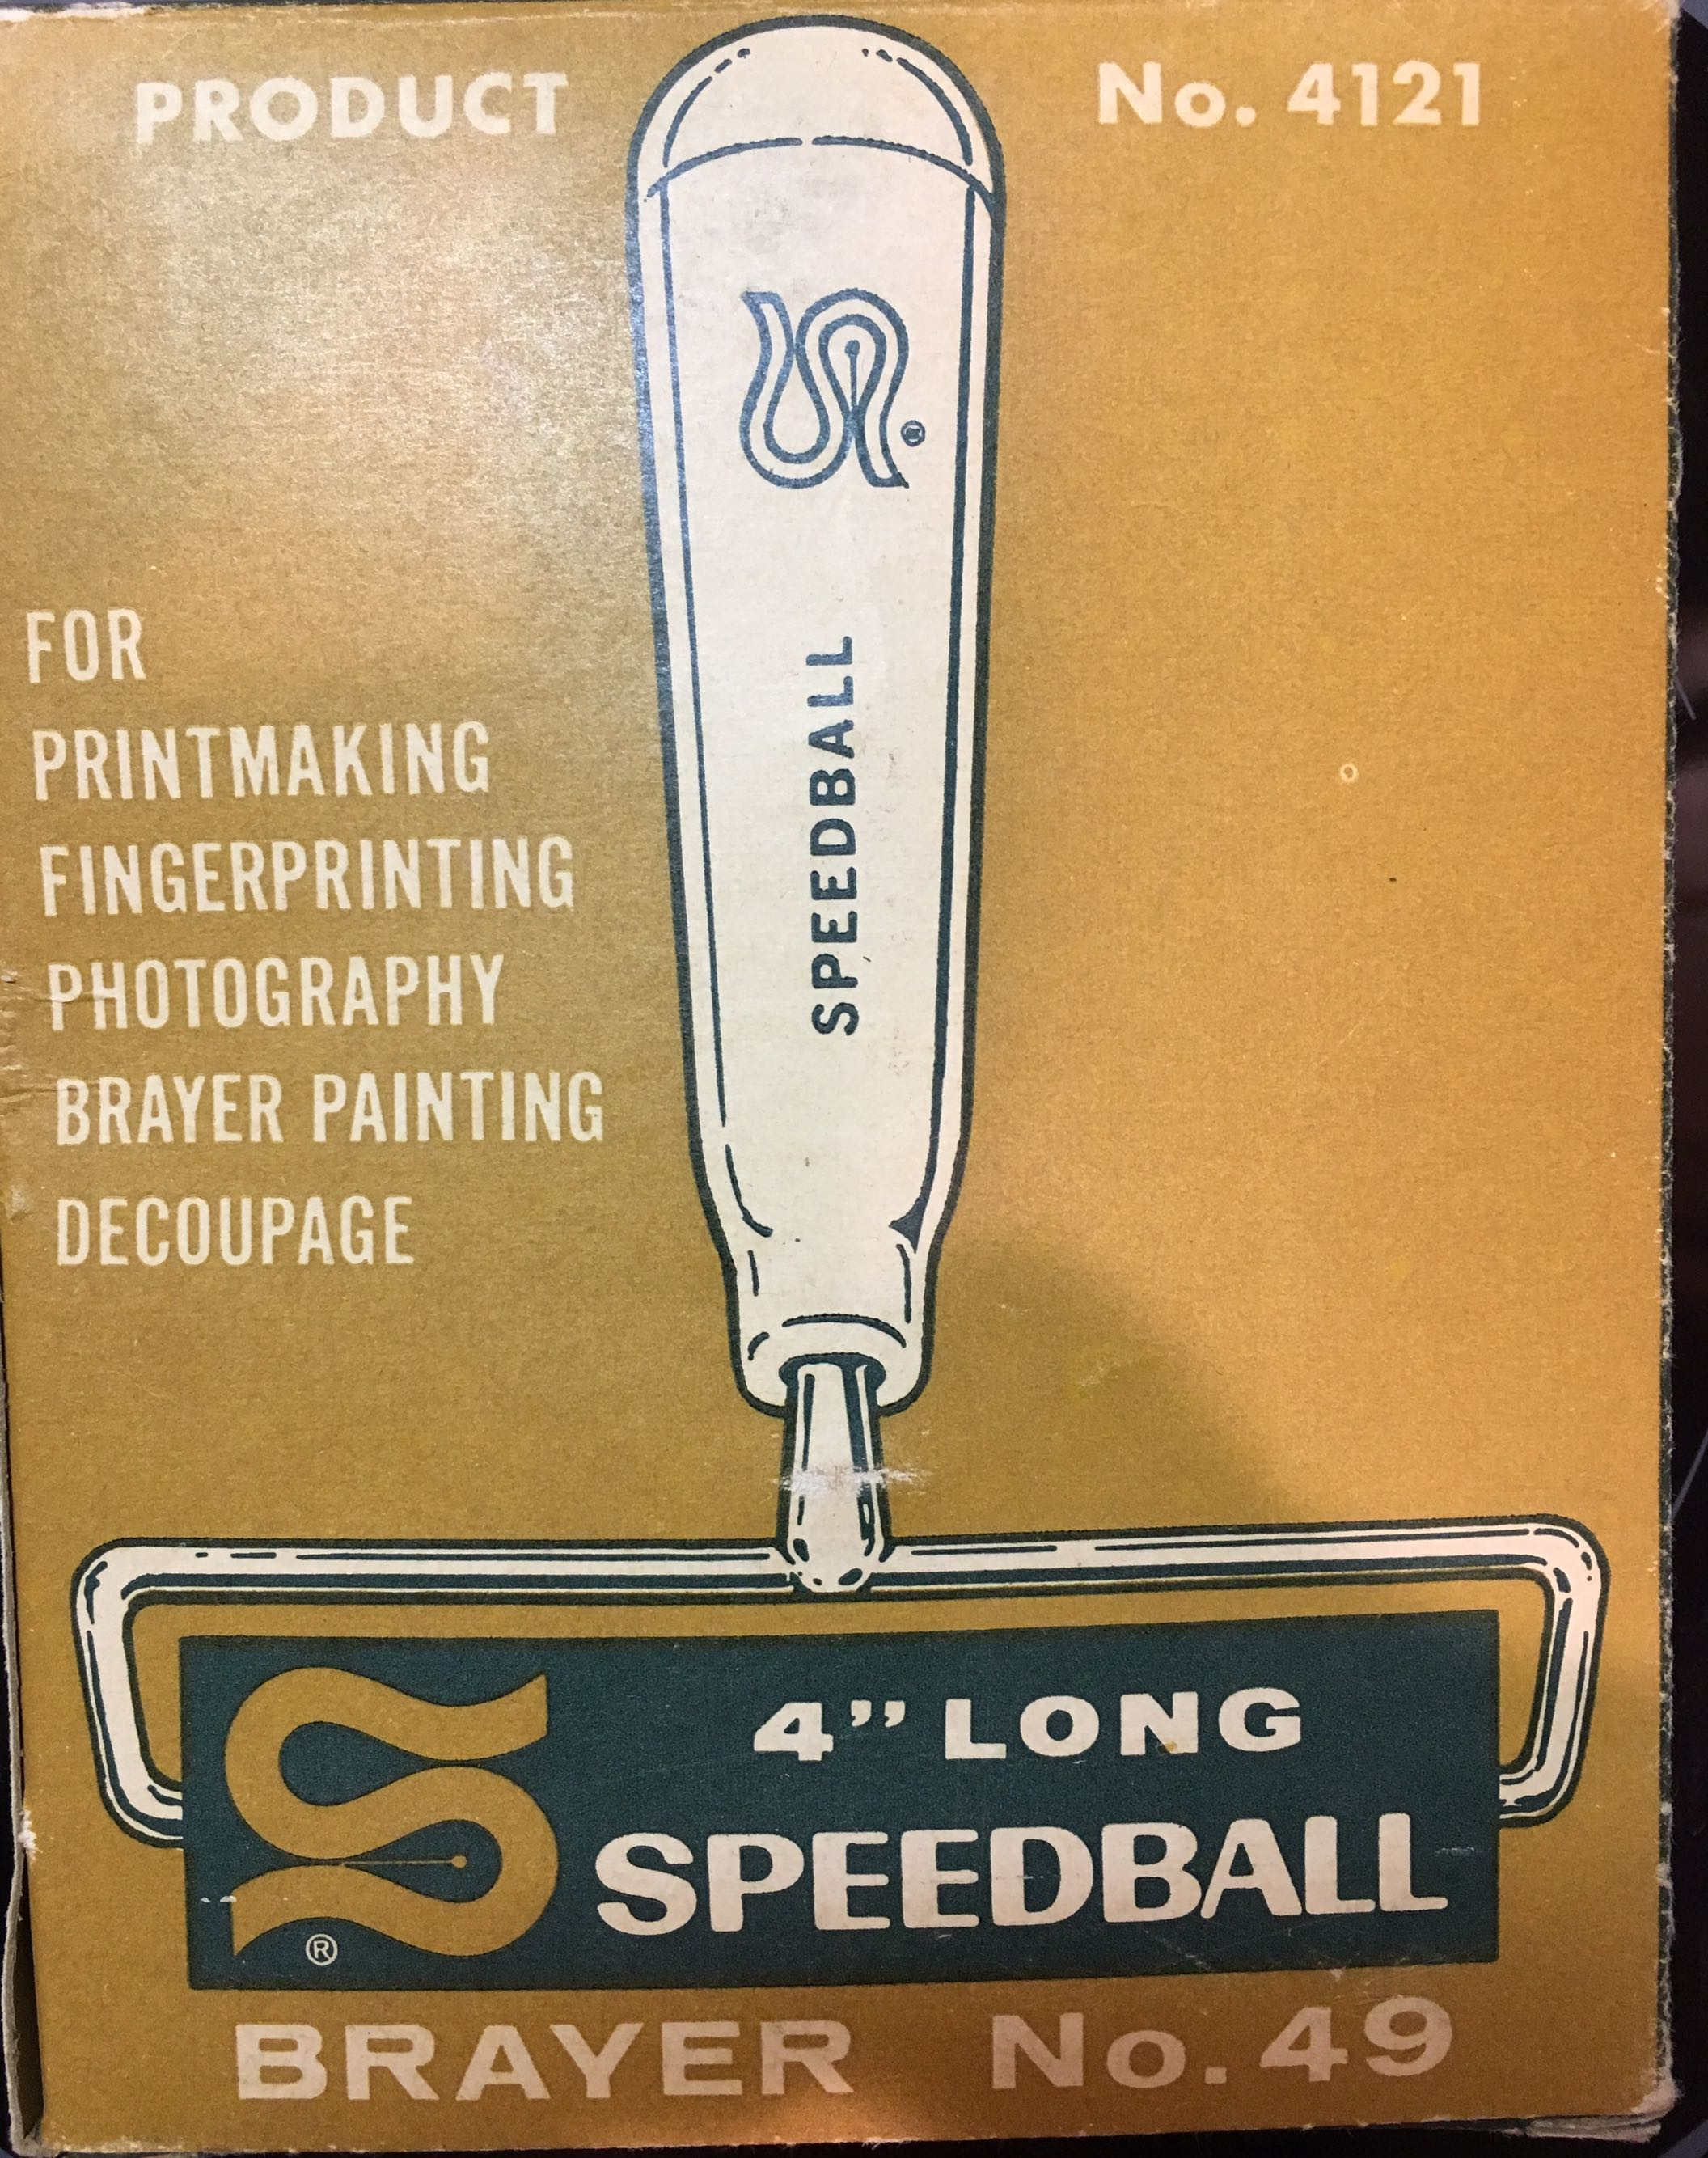 "4"" Long Speedball Brayer No. 49"